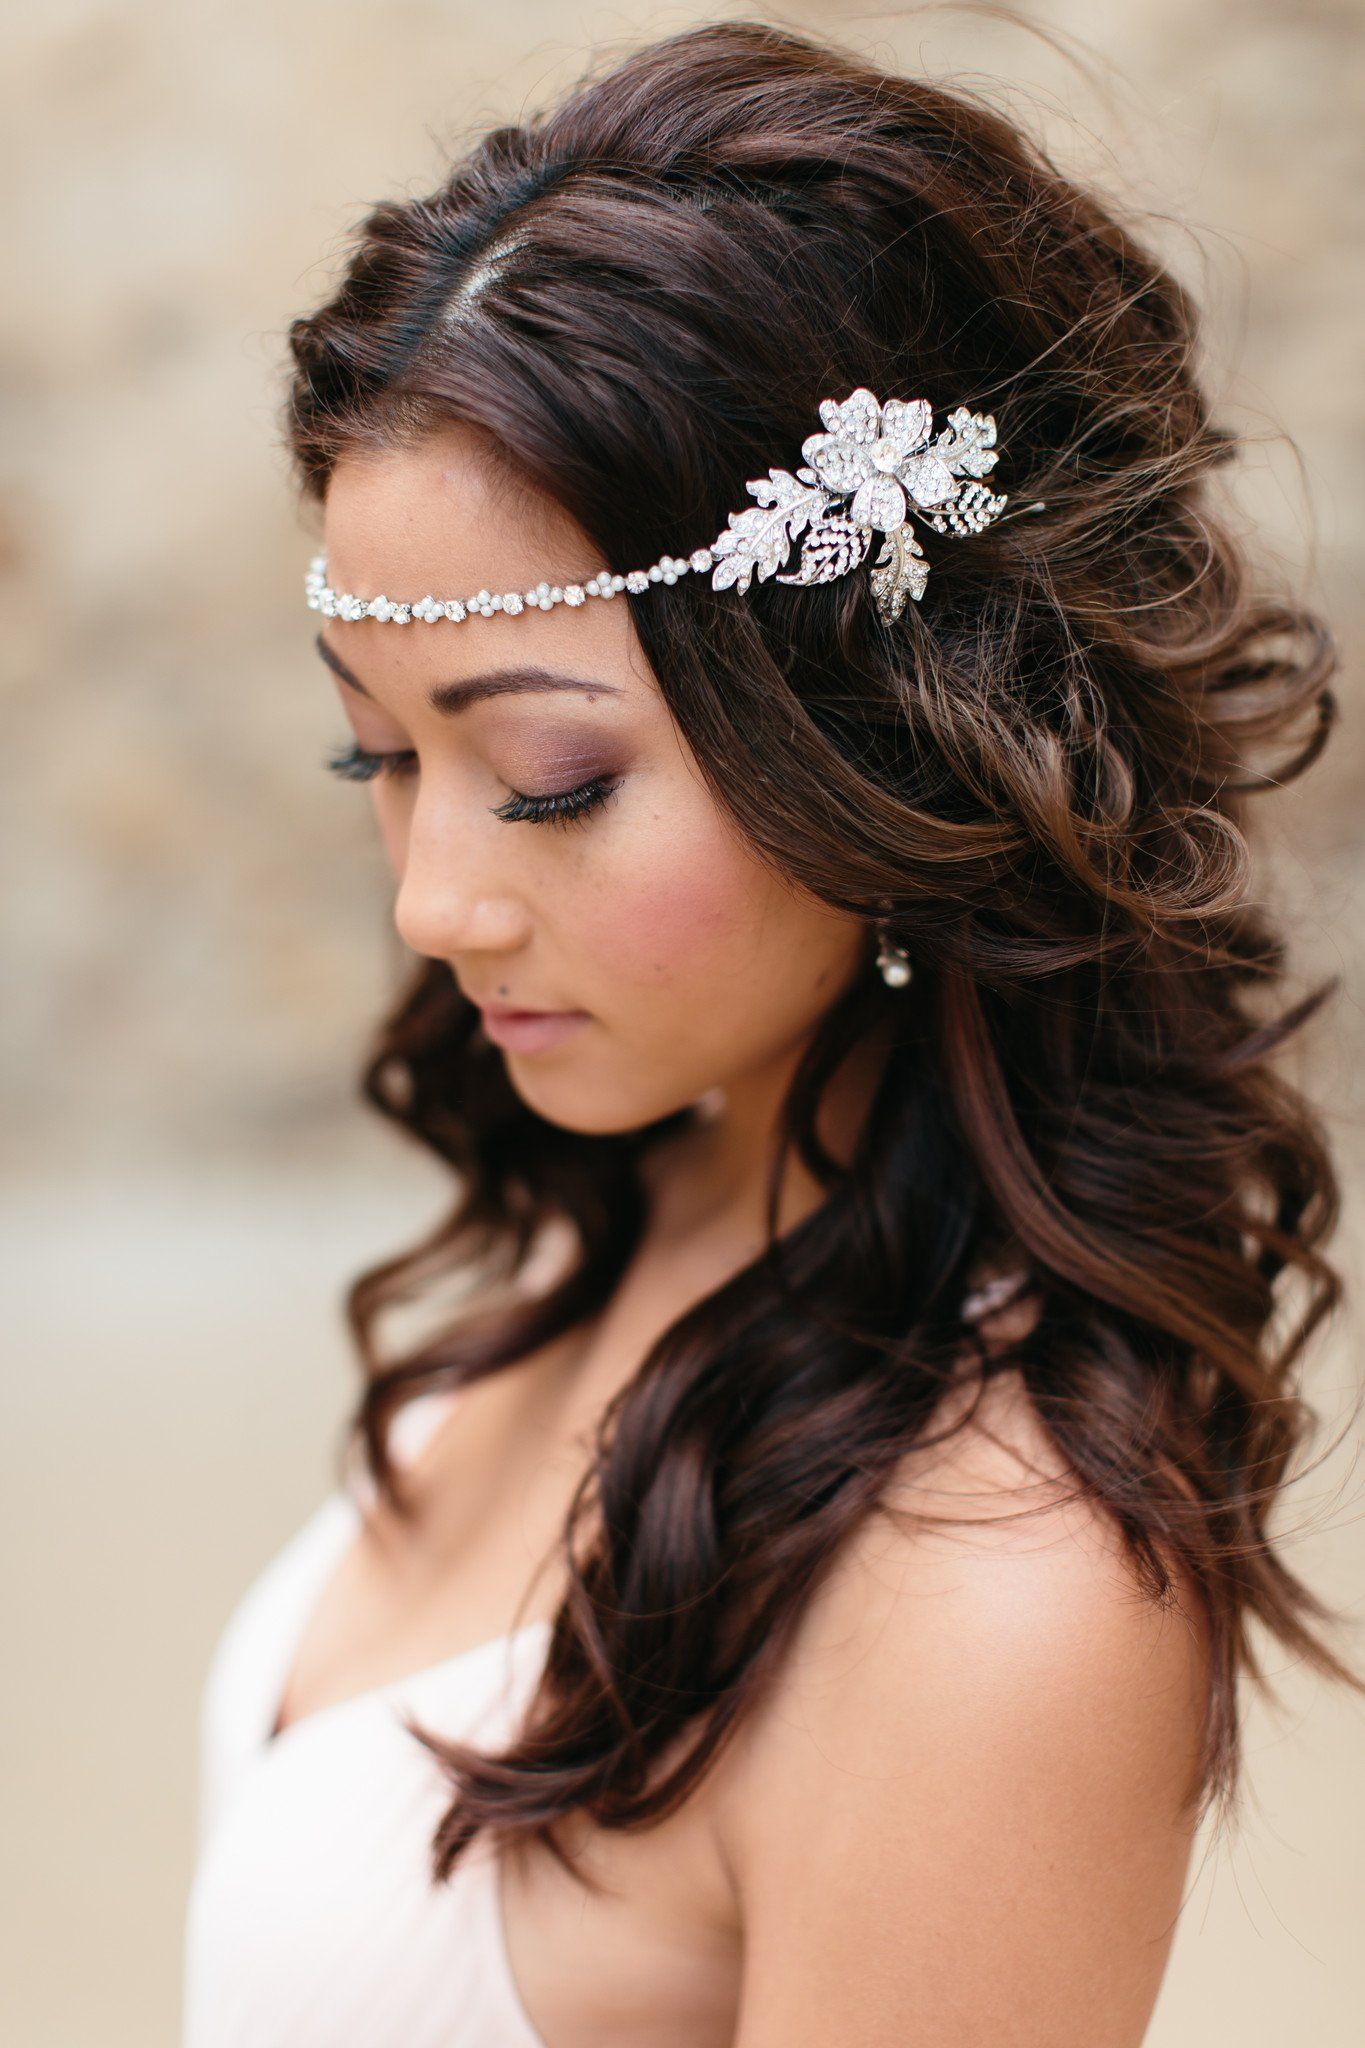 Can be worn across forehead Bridal Hair Accessories 9501e4c869f6